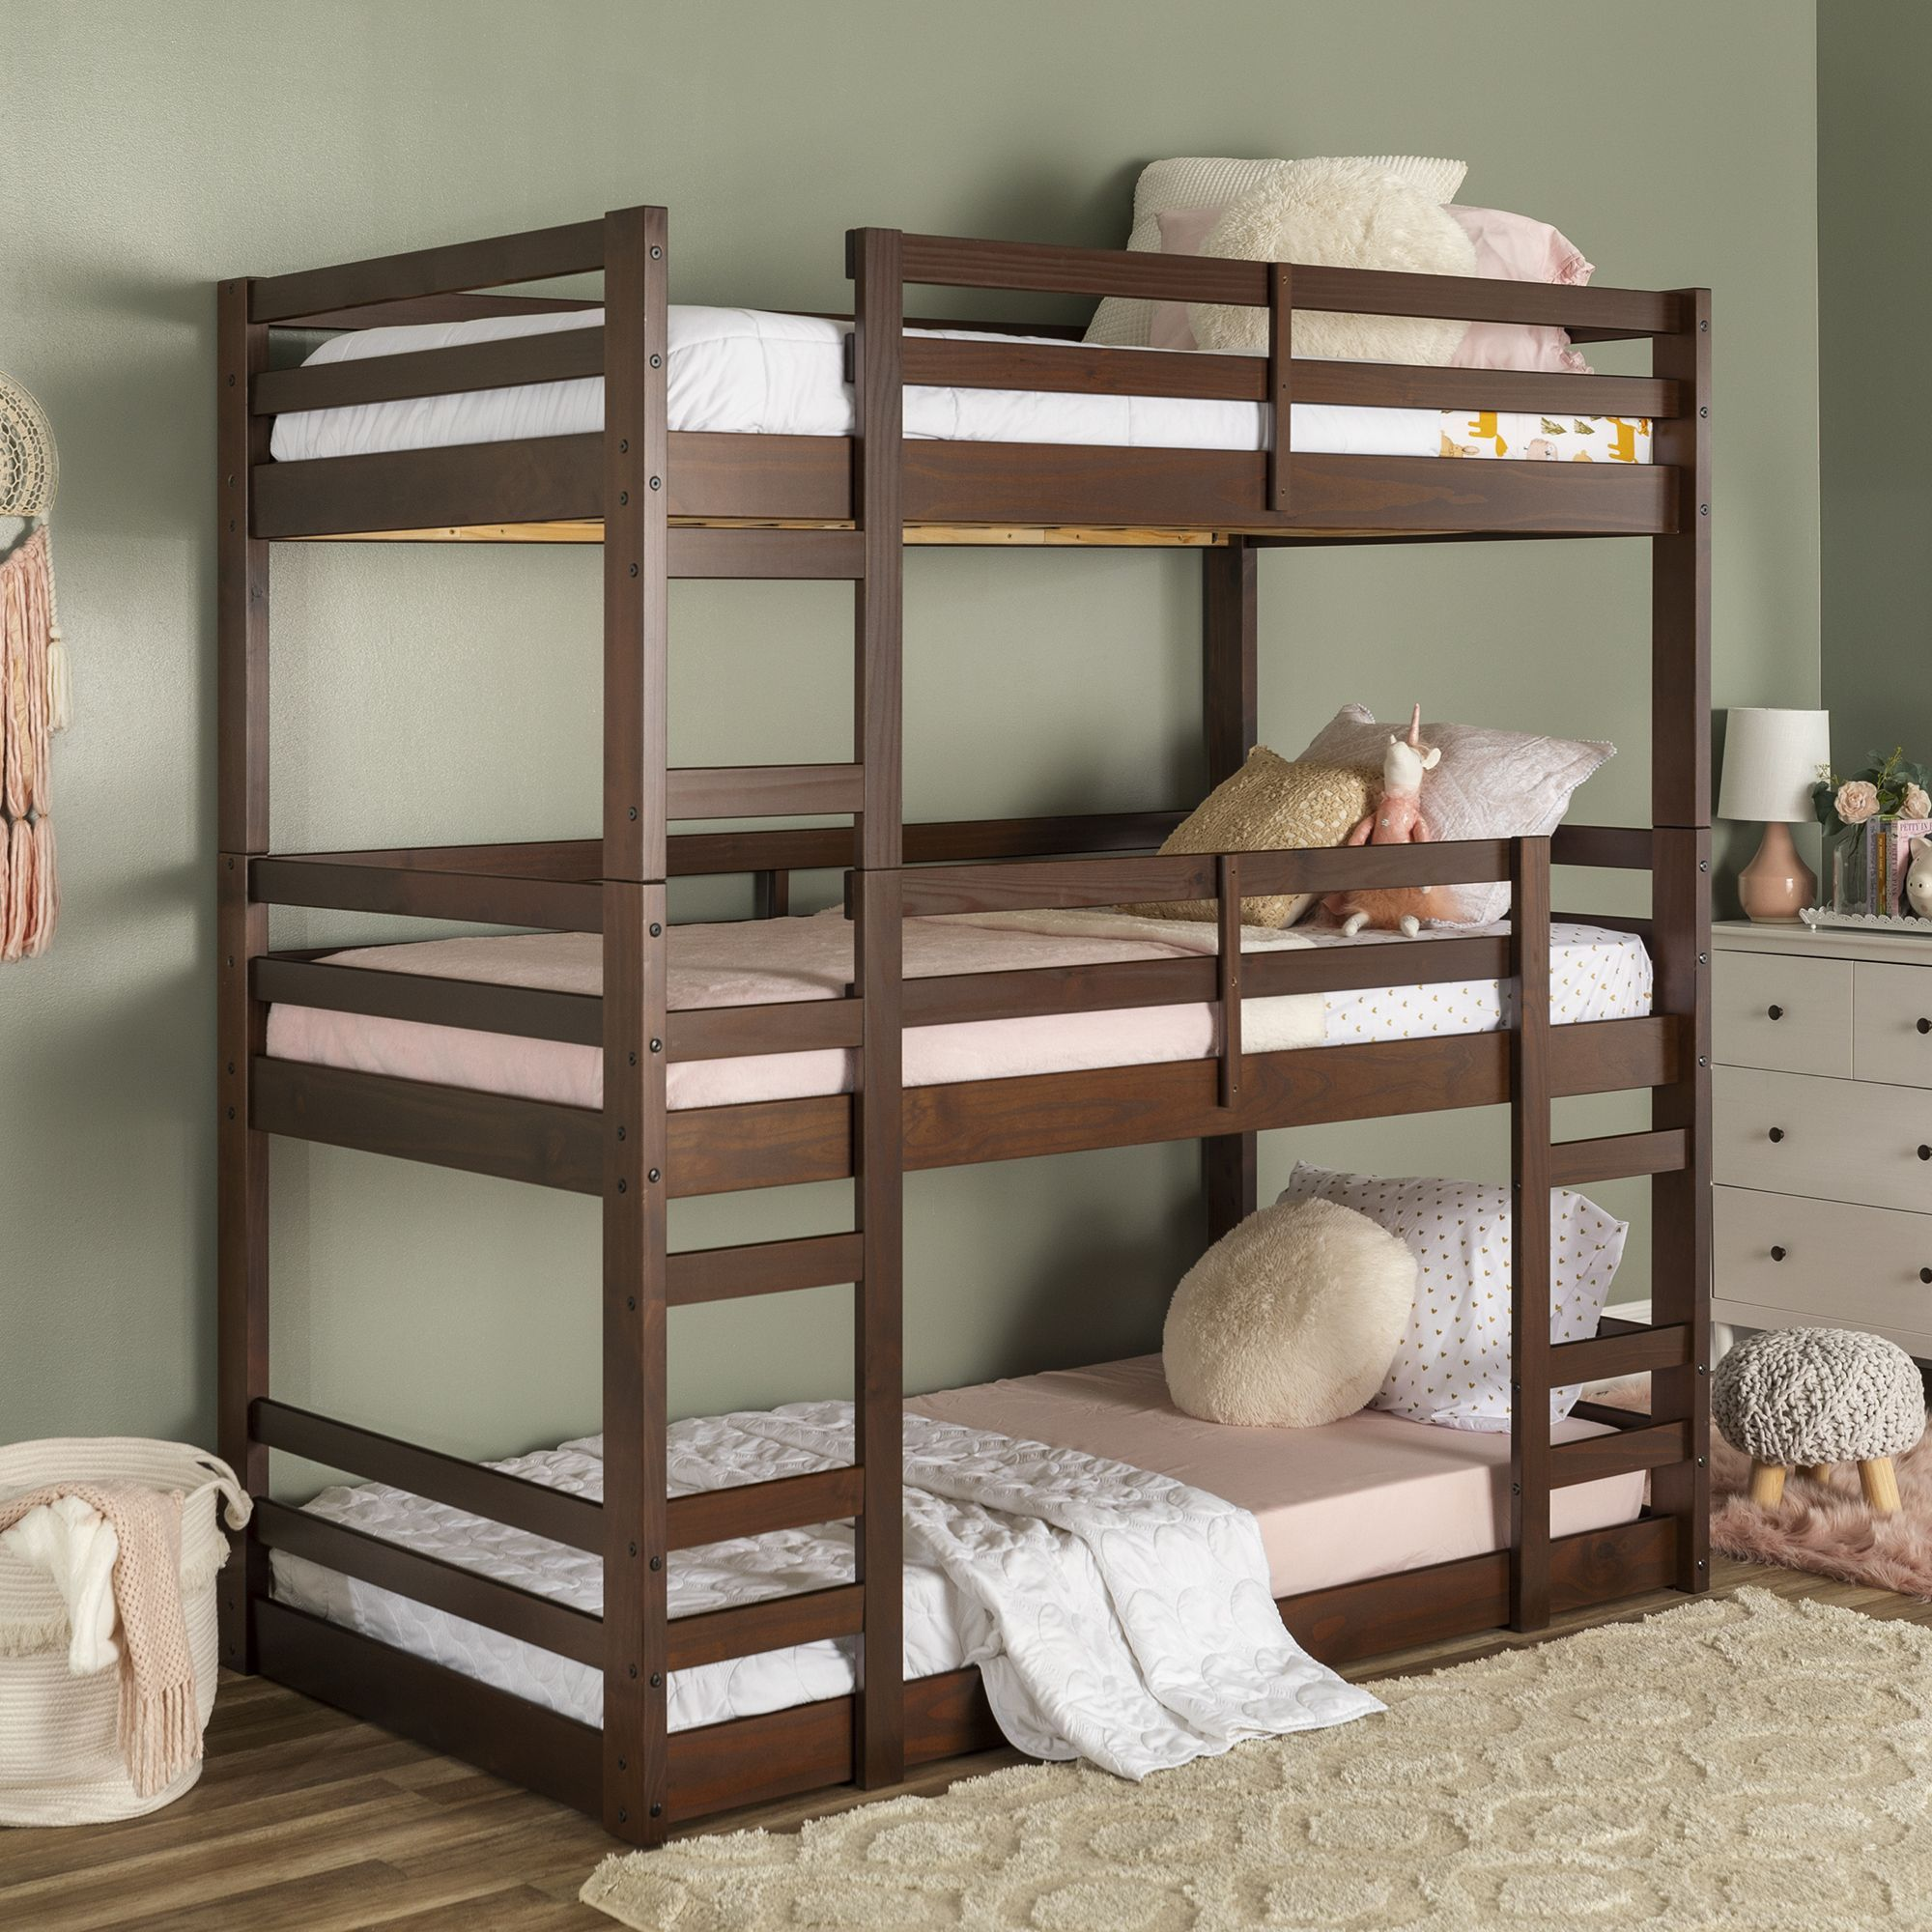 Manor Park Solid Wood Triple Bunk Bed Twin Over Twin Walnut Walmart Com Free 2 Day Shipping Buy Triple Bunk Bed Bunk Bed Designs Bunk Beds Small Room